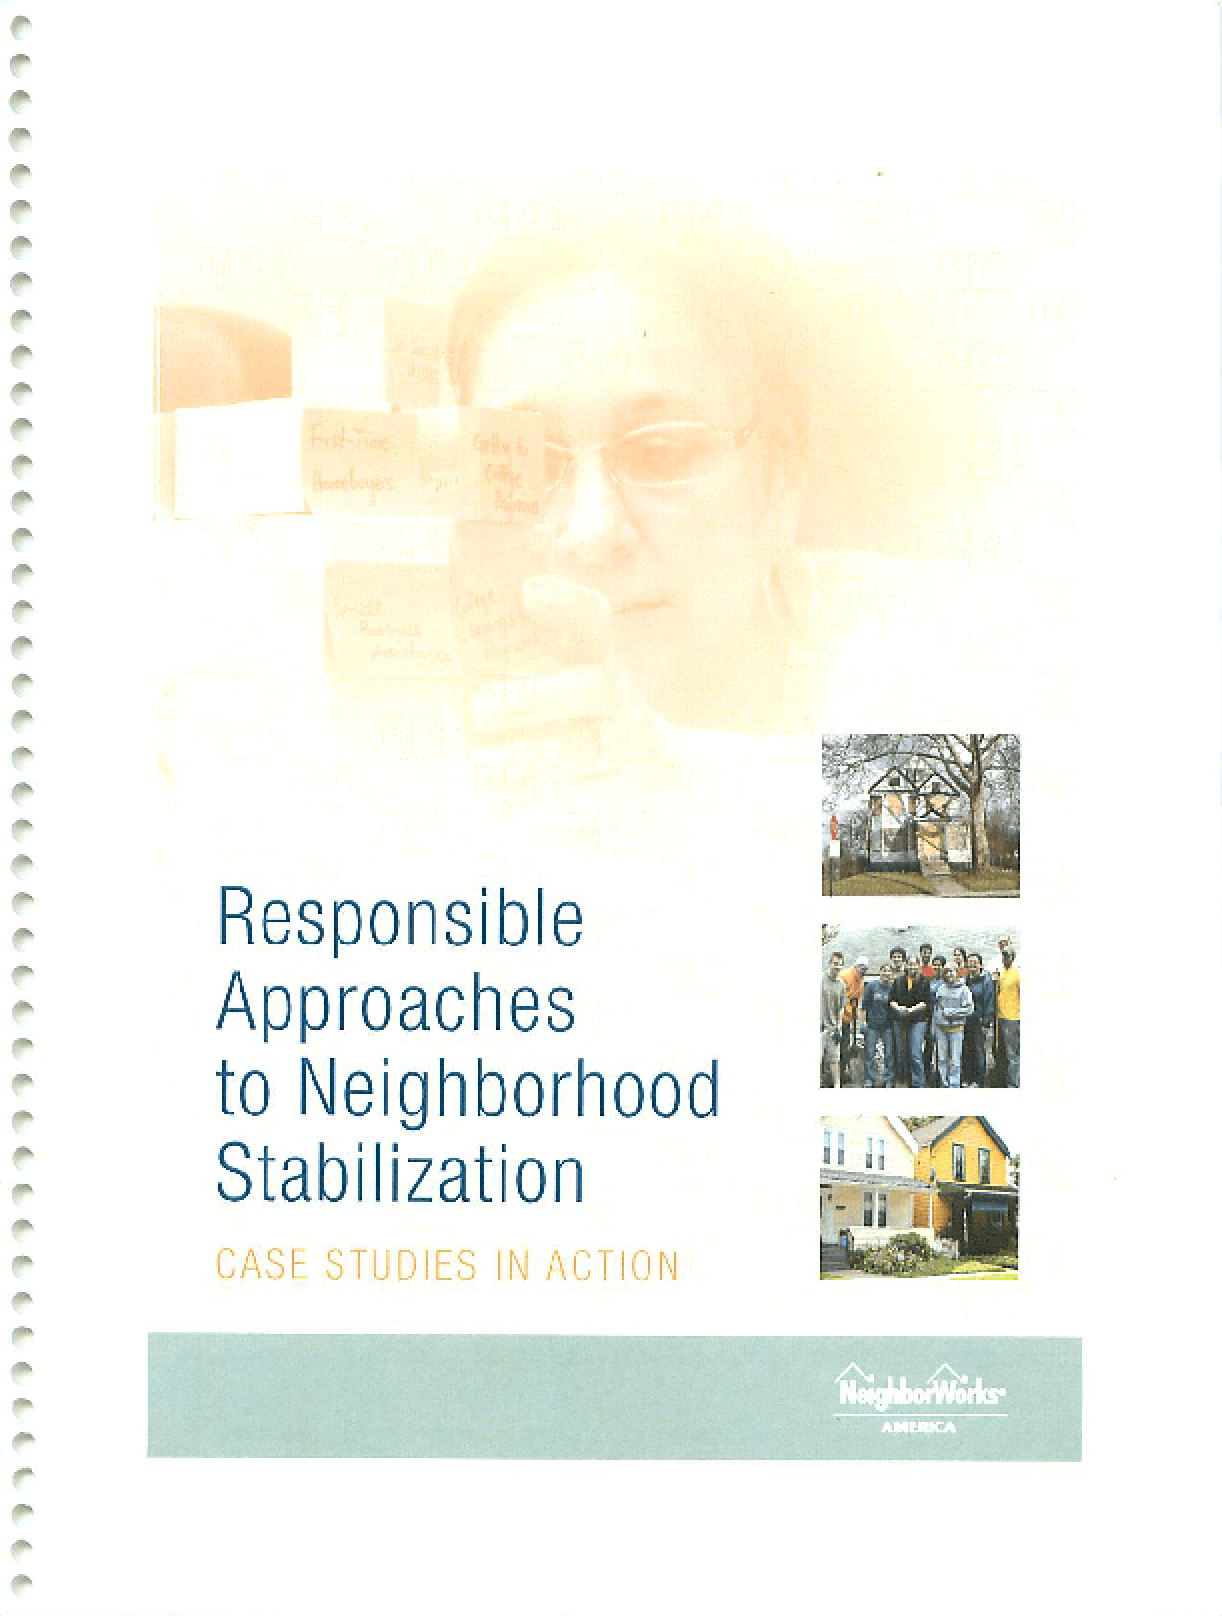 Responsible Approaches to Neighborhood Stabilization: Case Studies in Action